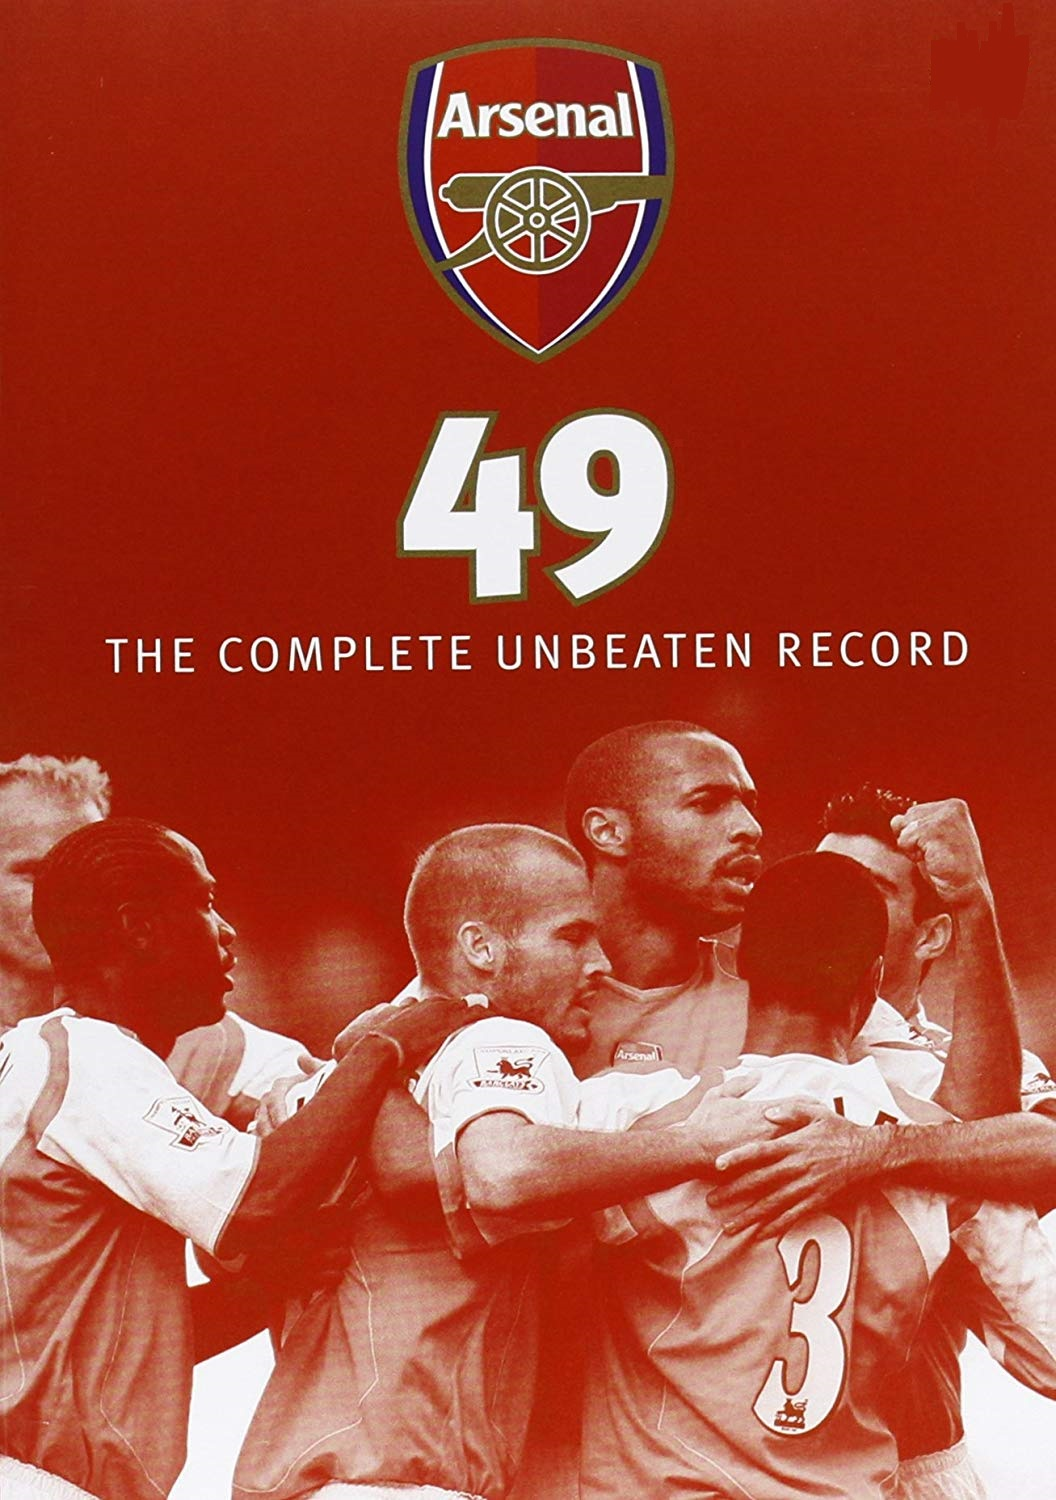 competitive price a7bc4 2ce8b Arsenal 49: The Complete Unbeaten Record (Video 2004) - IMDb